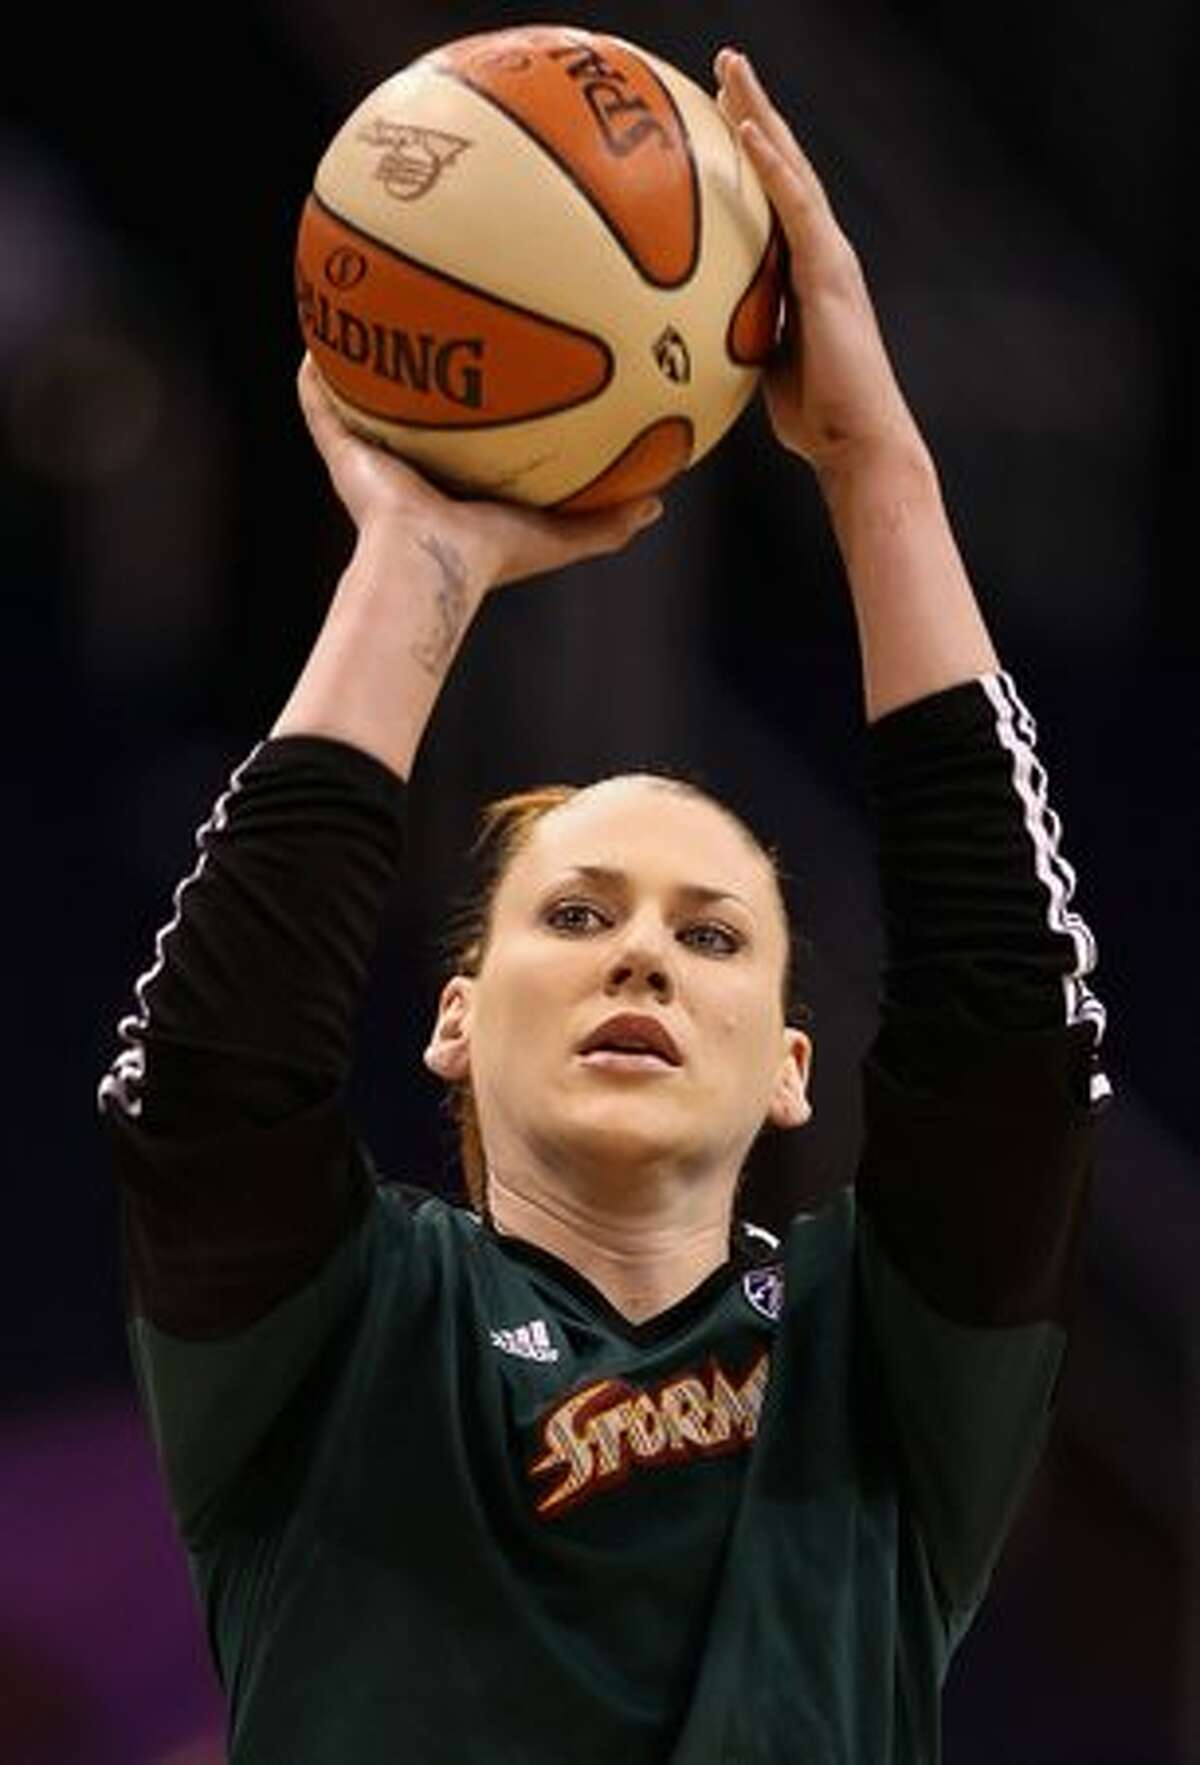 Lauren Jackson #15 of the Seattle Storm warms up prior to Game 2 of the Western Conference Finals against the Phoenix Mercury during the 2010 WNBA Playoffs at US Airways Center in Phoenix on Sunday, Sept. 5, 2010.